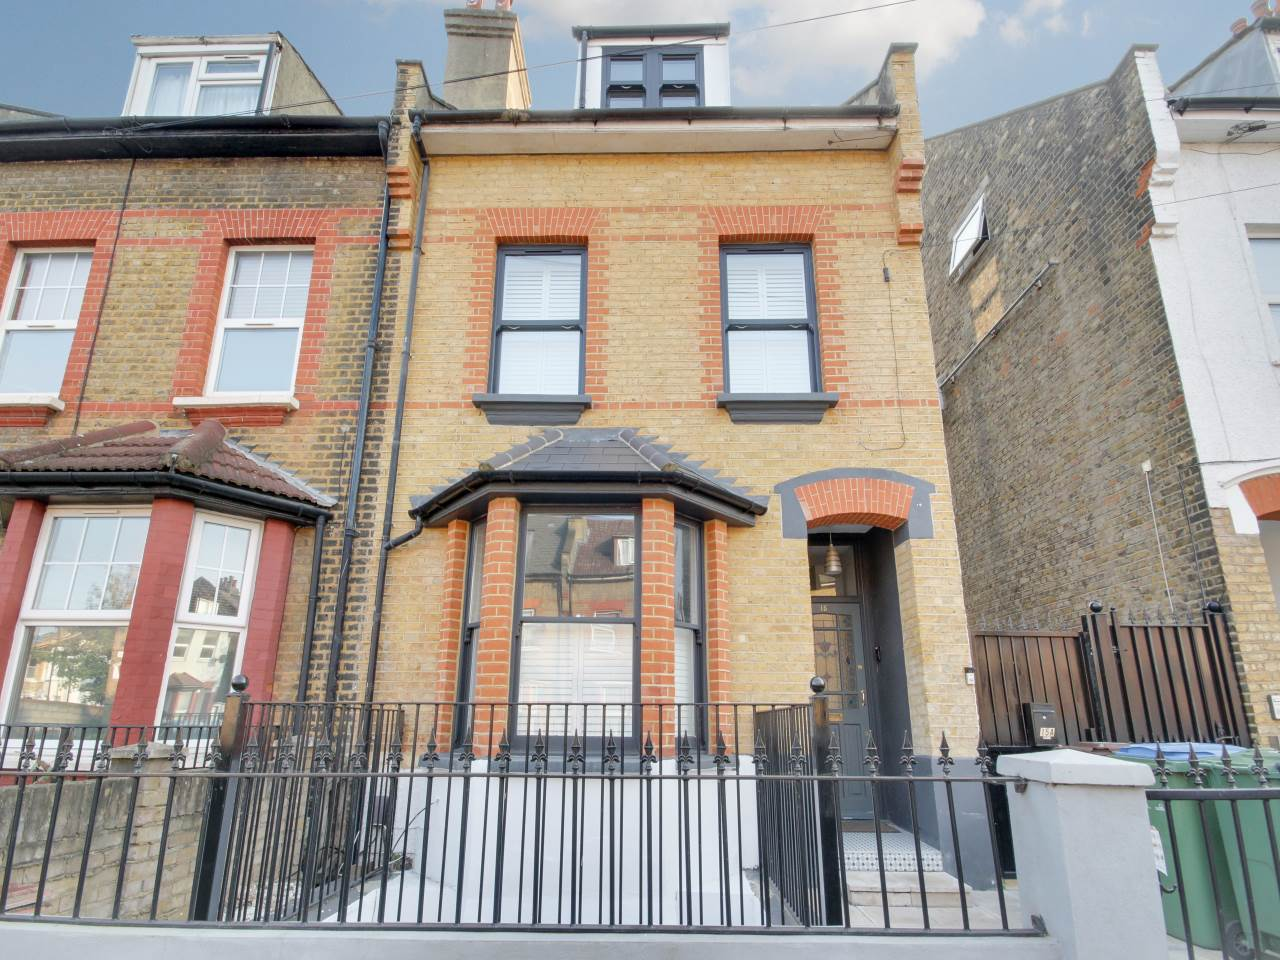 2 bed flat for sale in Walthamstow, E17